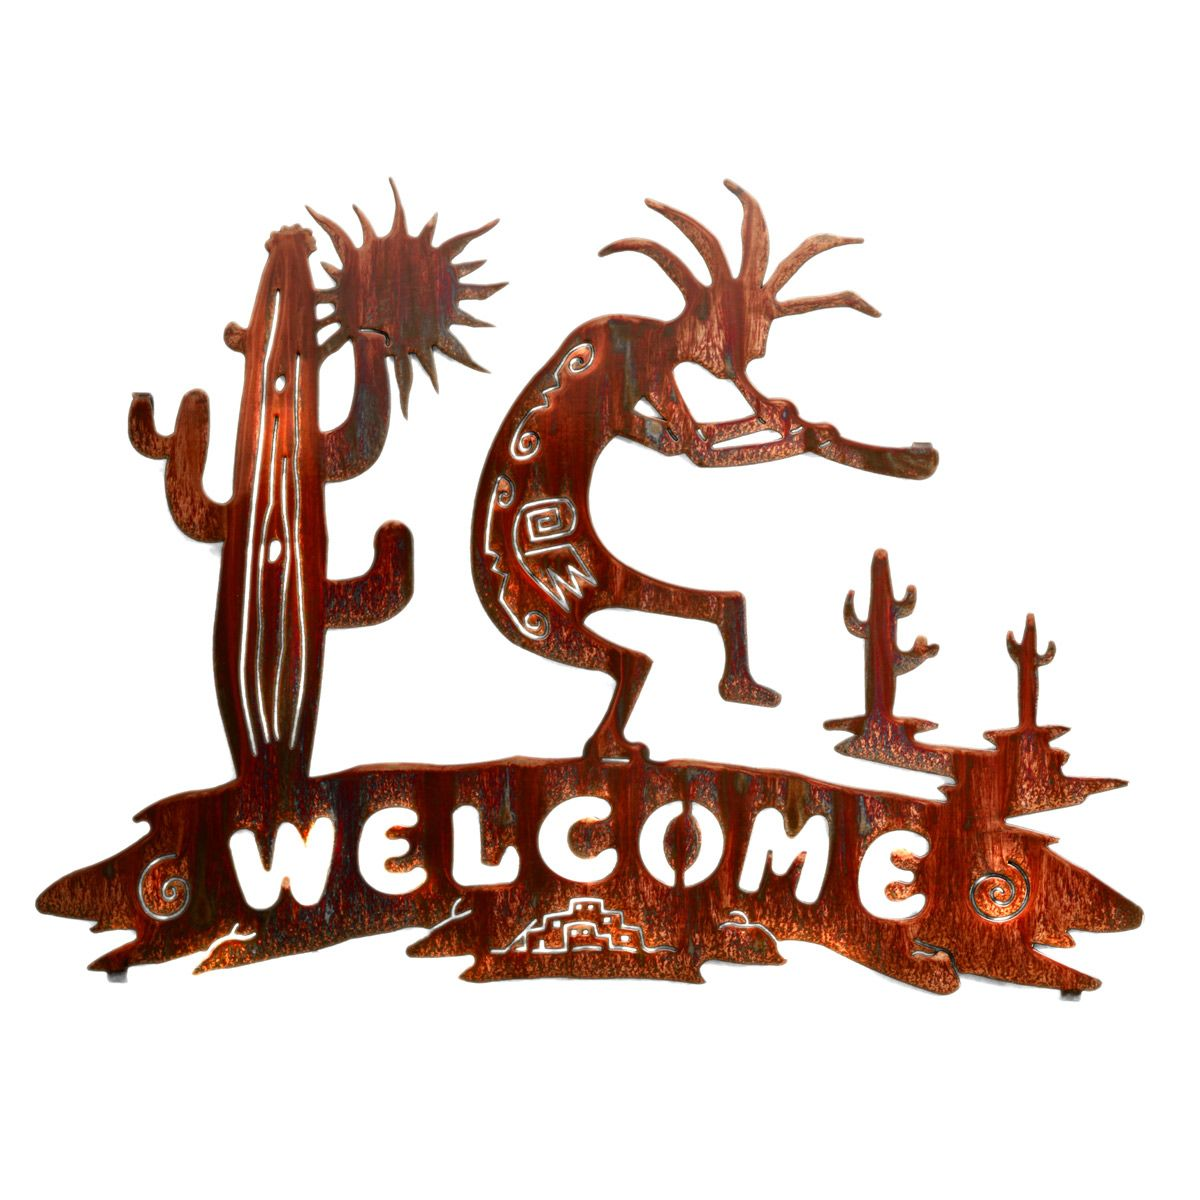 Kokopelli Desert Welcome Metal Wall Art